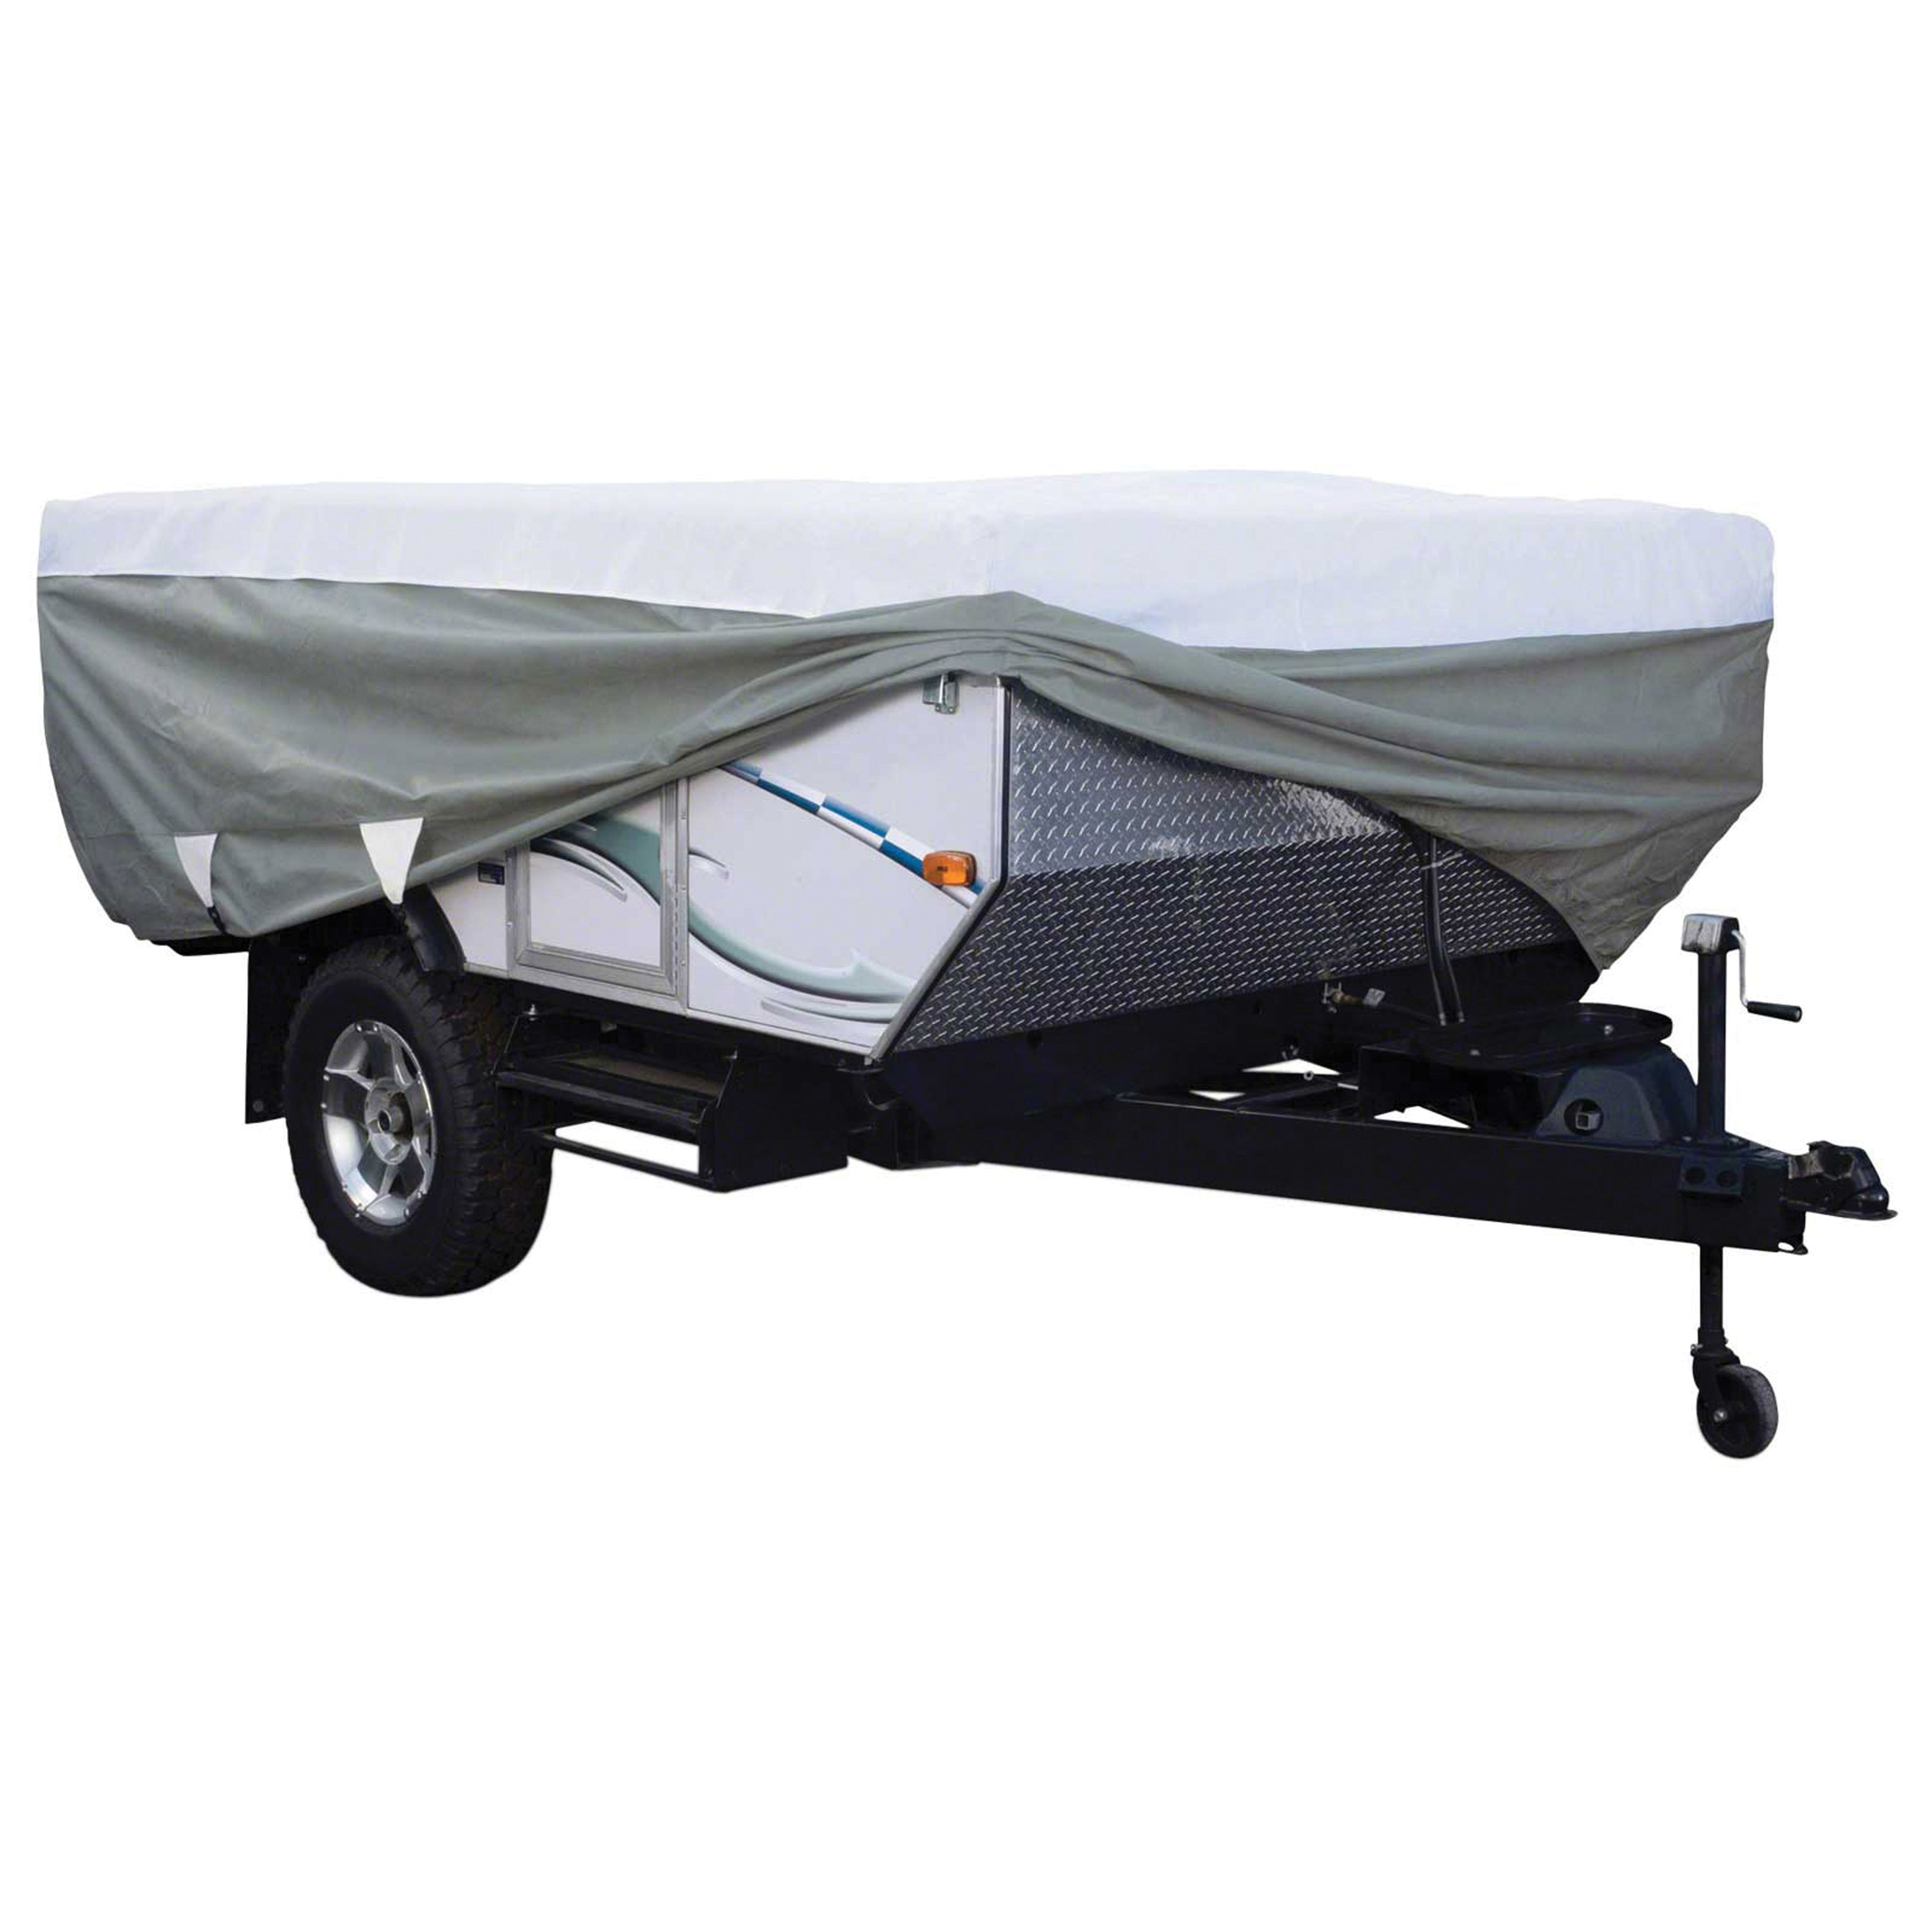 Classic Accessories PolyPRO 3 RV Deluxe Pop-Up Camper Trailer Cover, Fits 18' - 20' Trailers